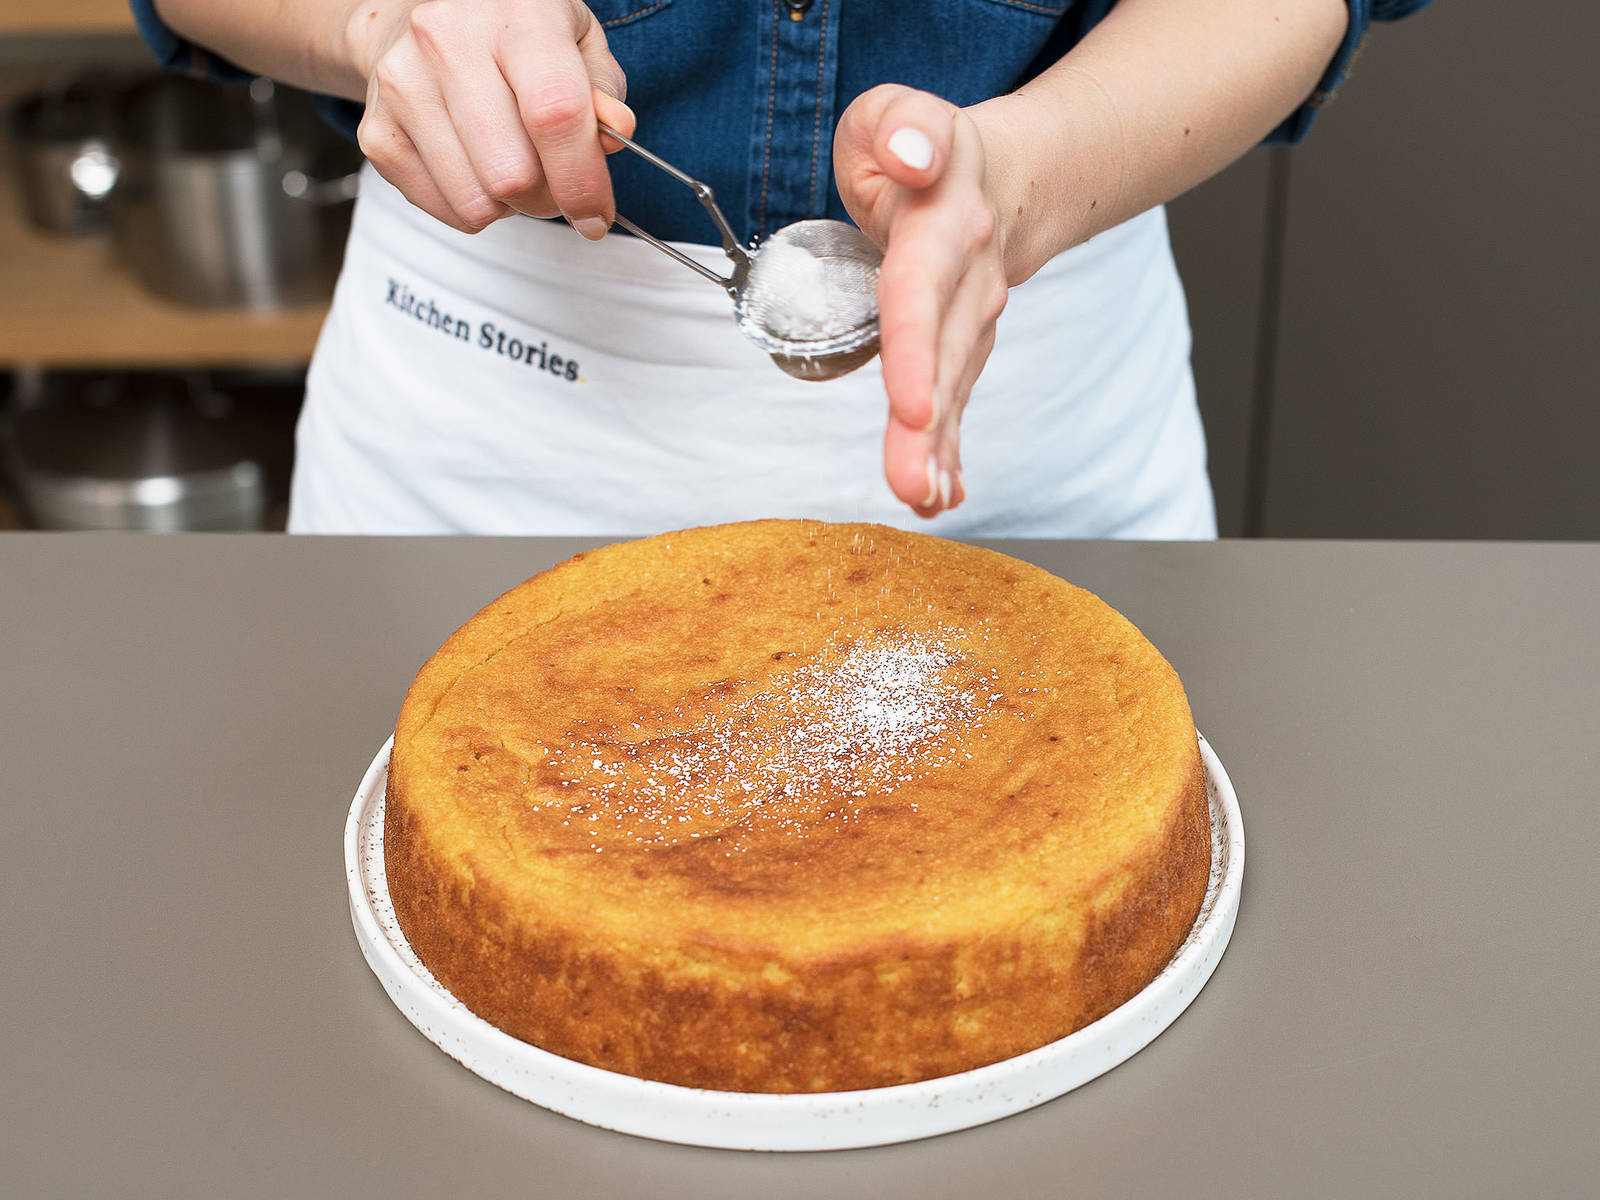 Remove cake from oven and place on a wire rack to cool before turning cake out of pan. Dust with confectioner's sugar before serving and enjoy!